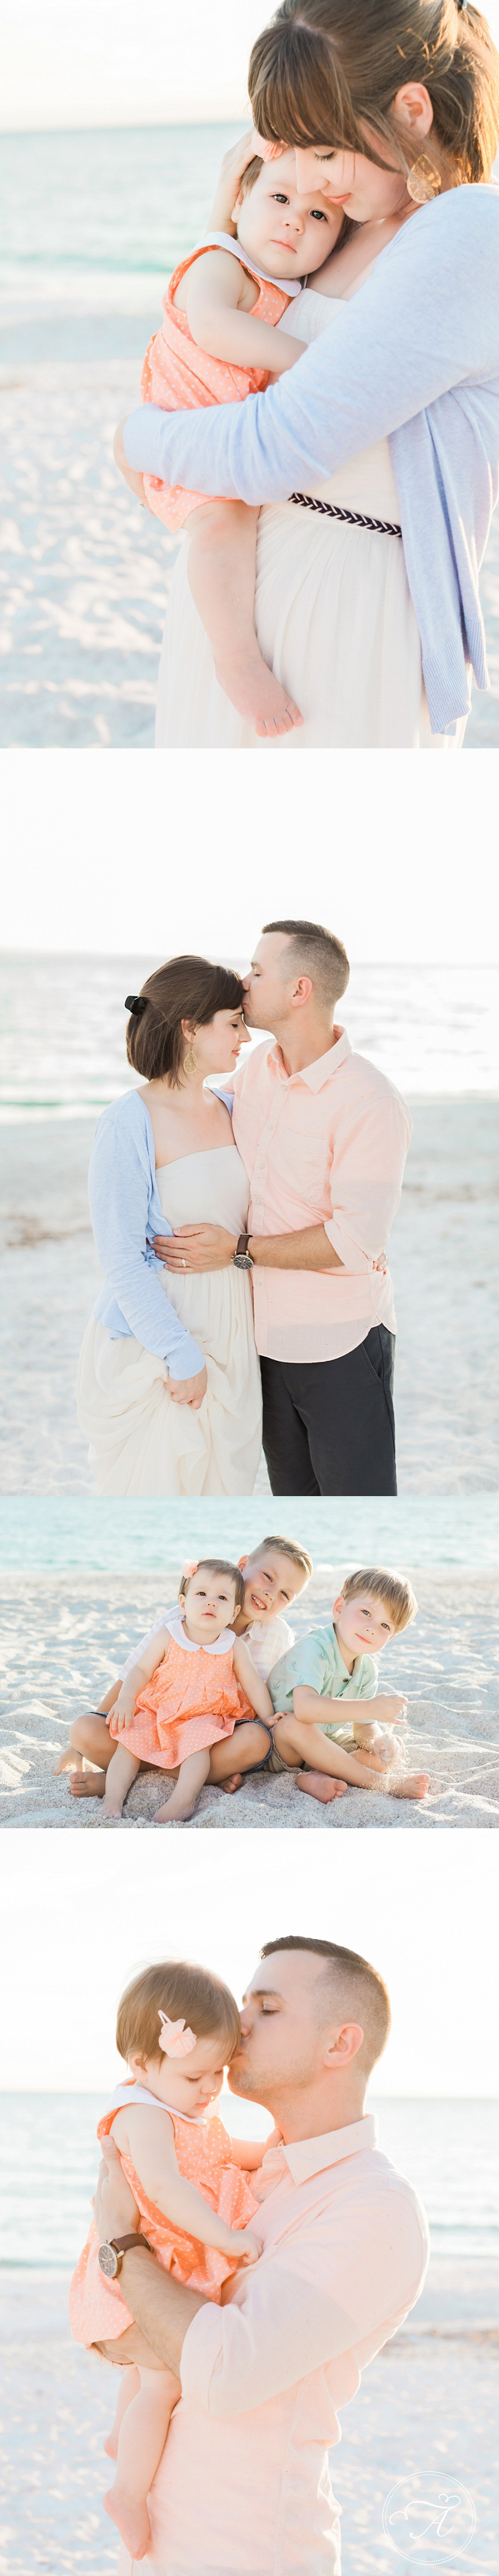 annamaria_island_family_beach_photography_neutral_sand44